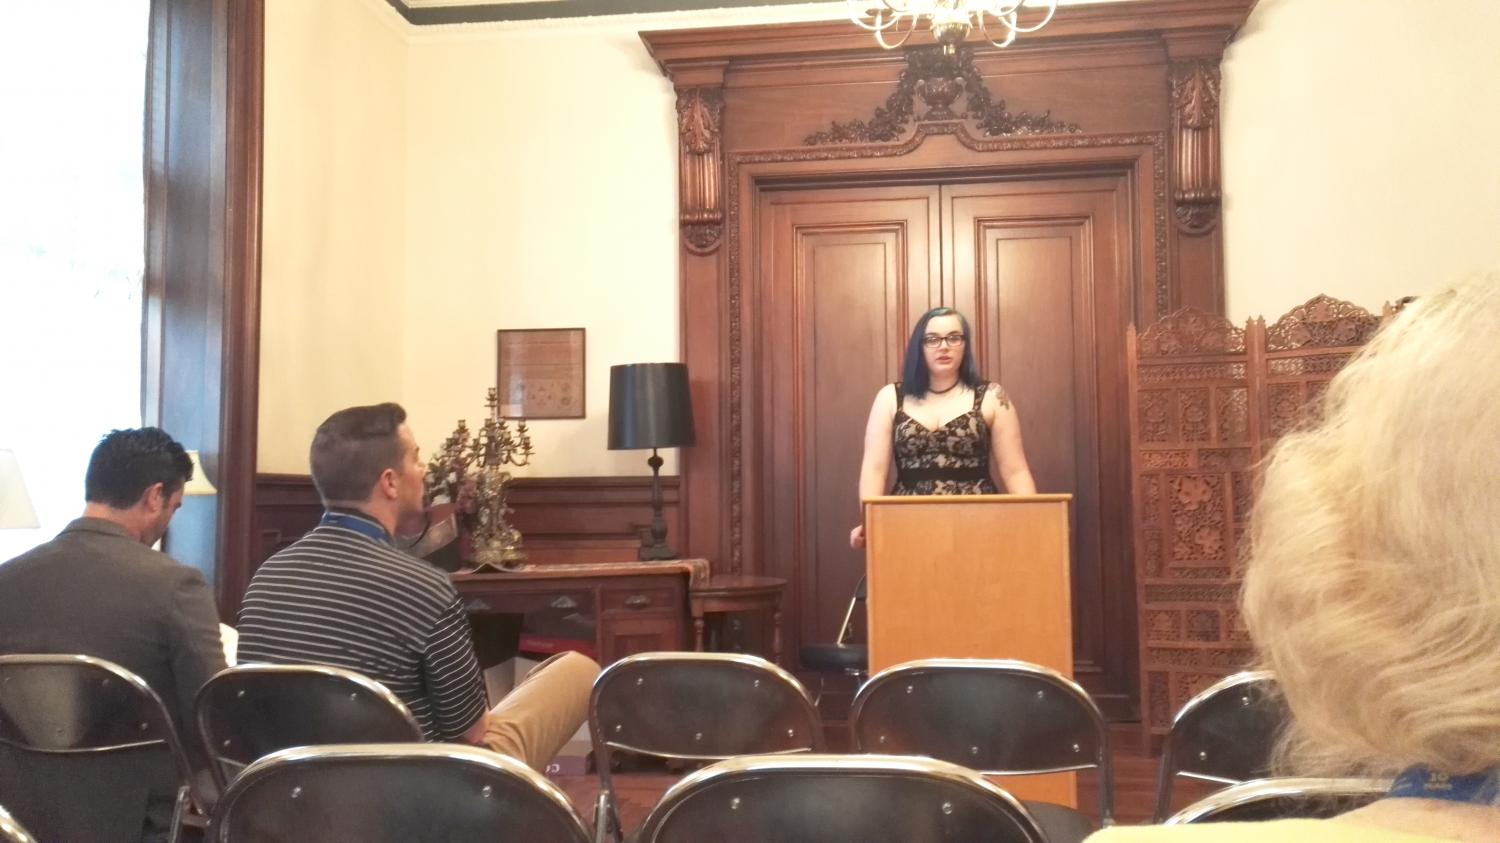 Elyse Guziewicz, the executive editor of the magazine, stands at the podium to introduce each speaker at the gathering.